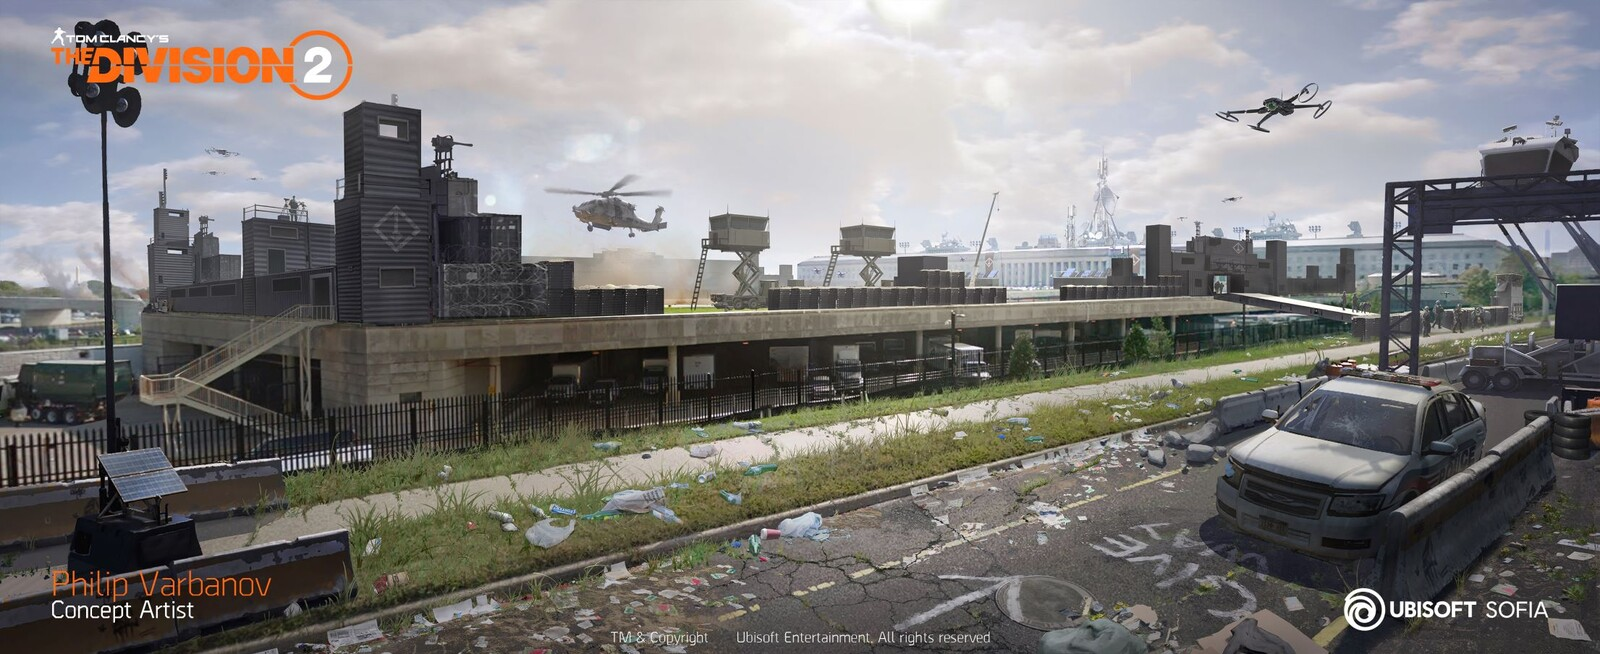 The Division 2 - Pentagon Helipad